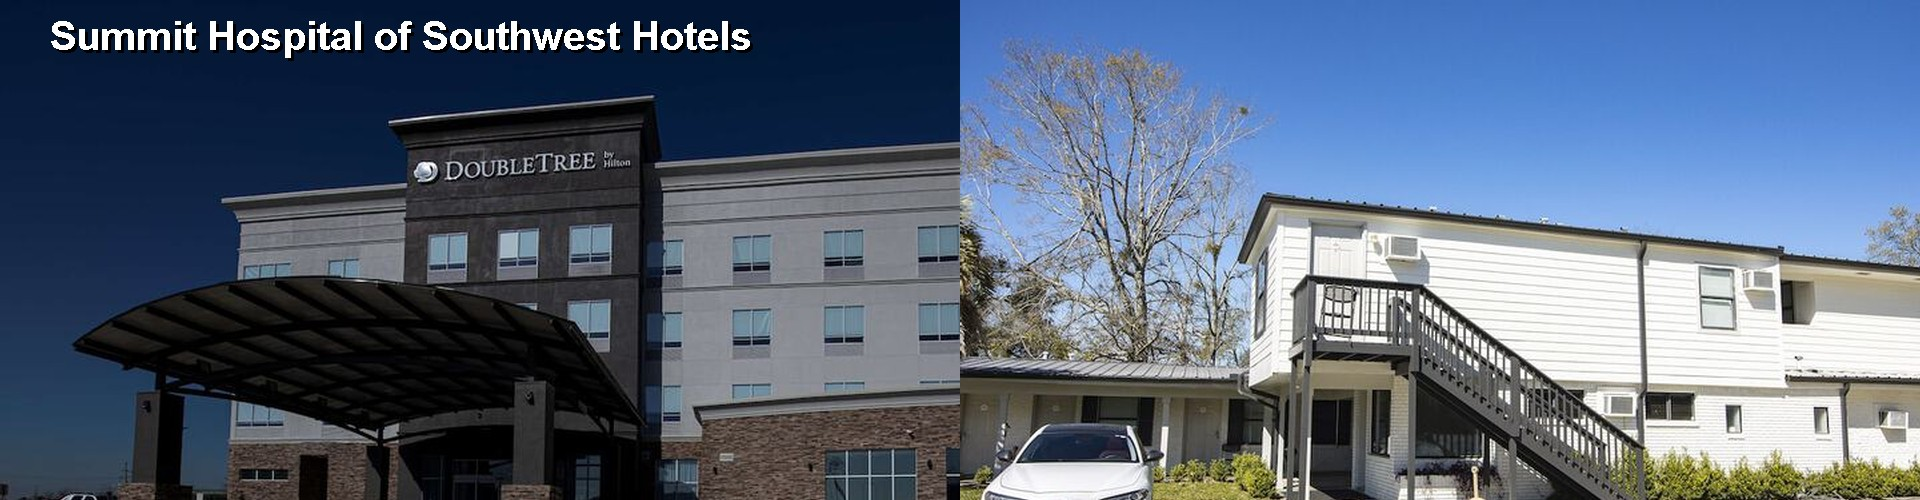 5 Best Hotels near Summit Hospital of Southwest